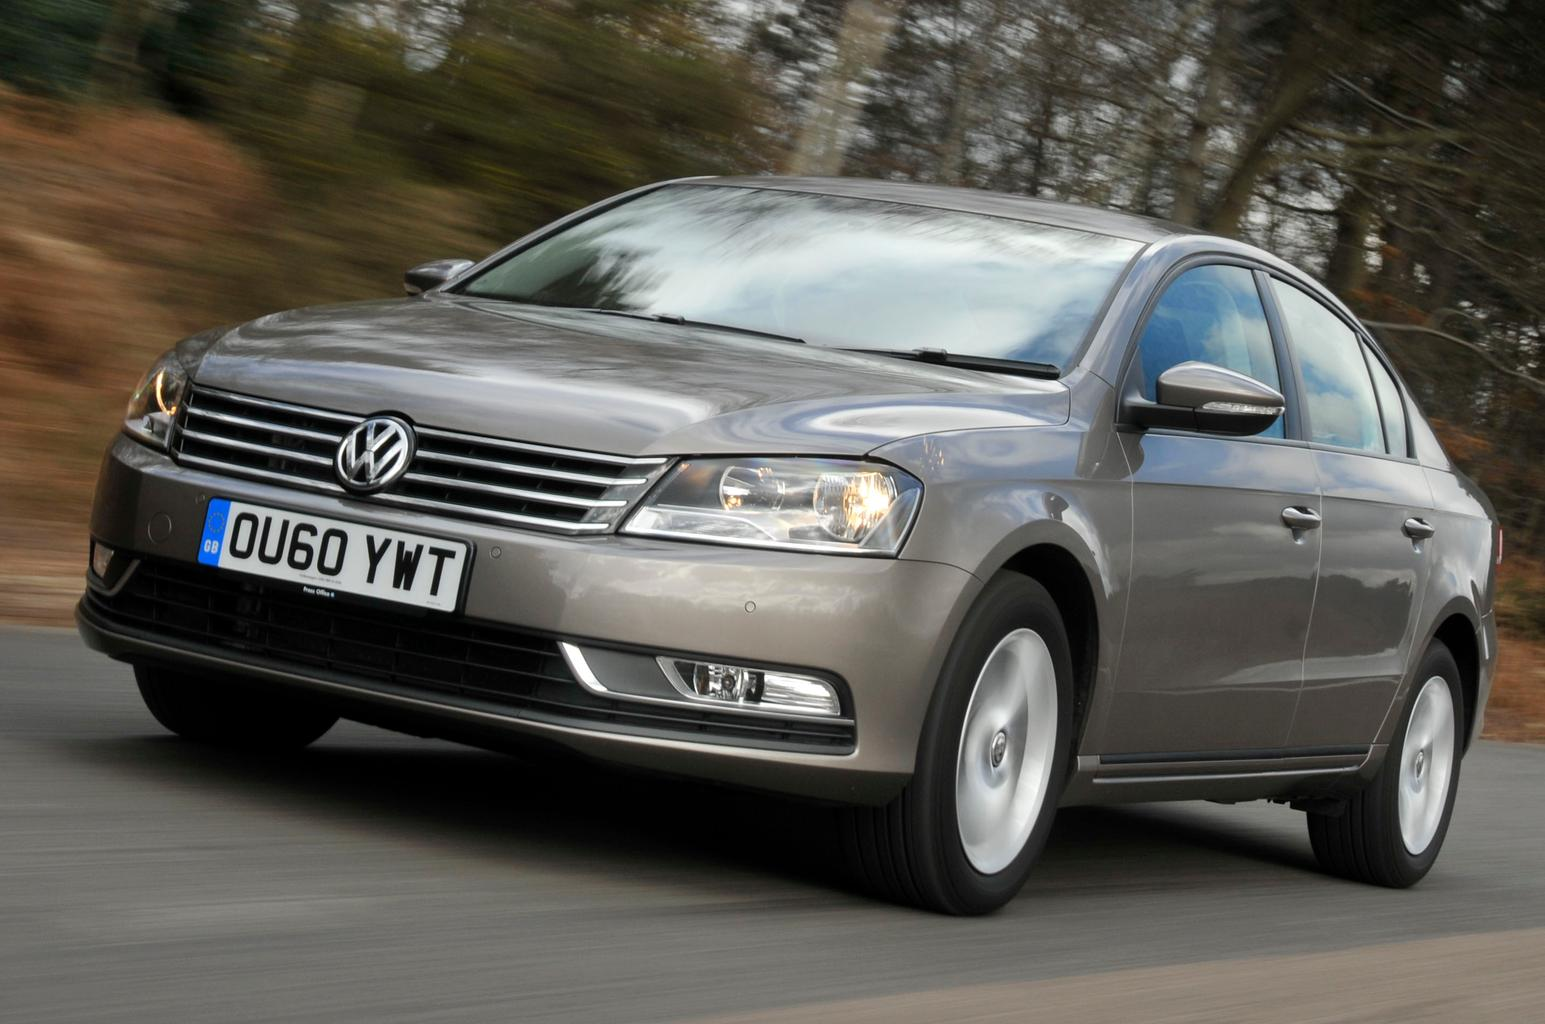 Best used executive cars for less than £10,000 (and the ones to avoid)